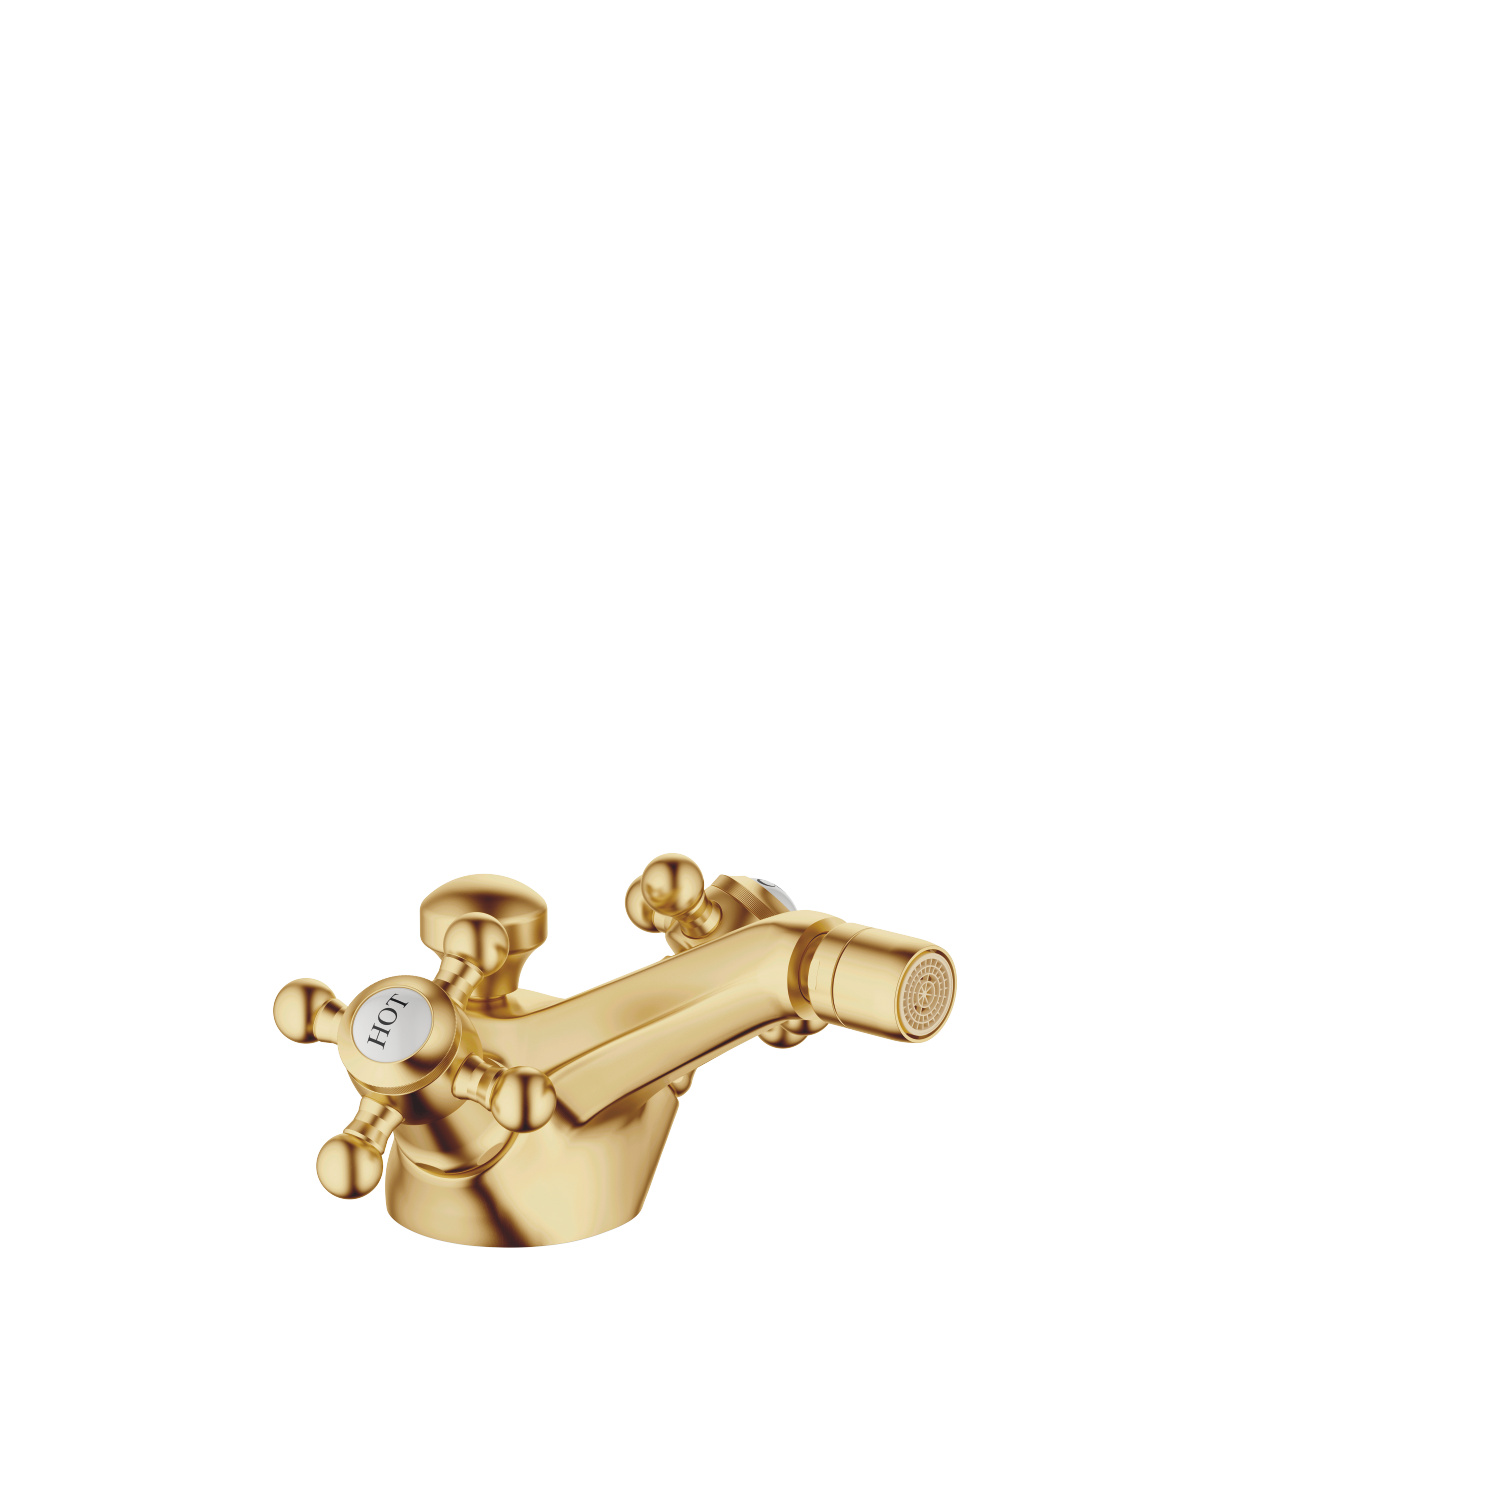 Single-hole bidet mixer with pop-up waste - brushed Durabrass